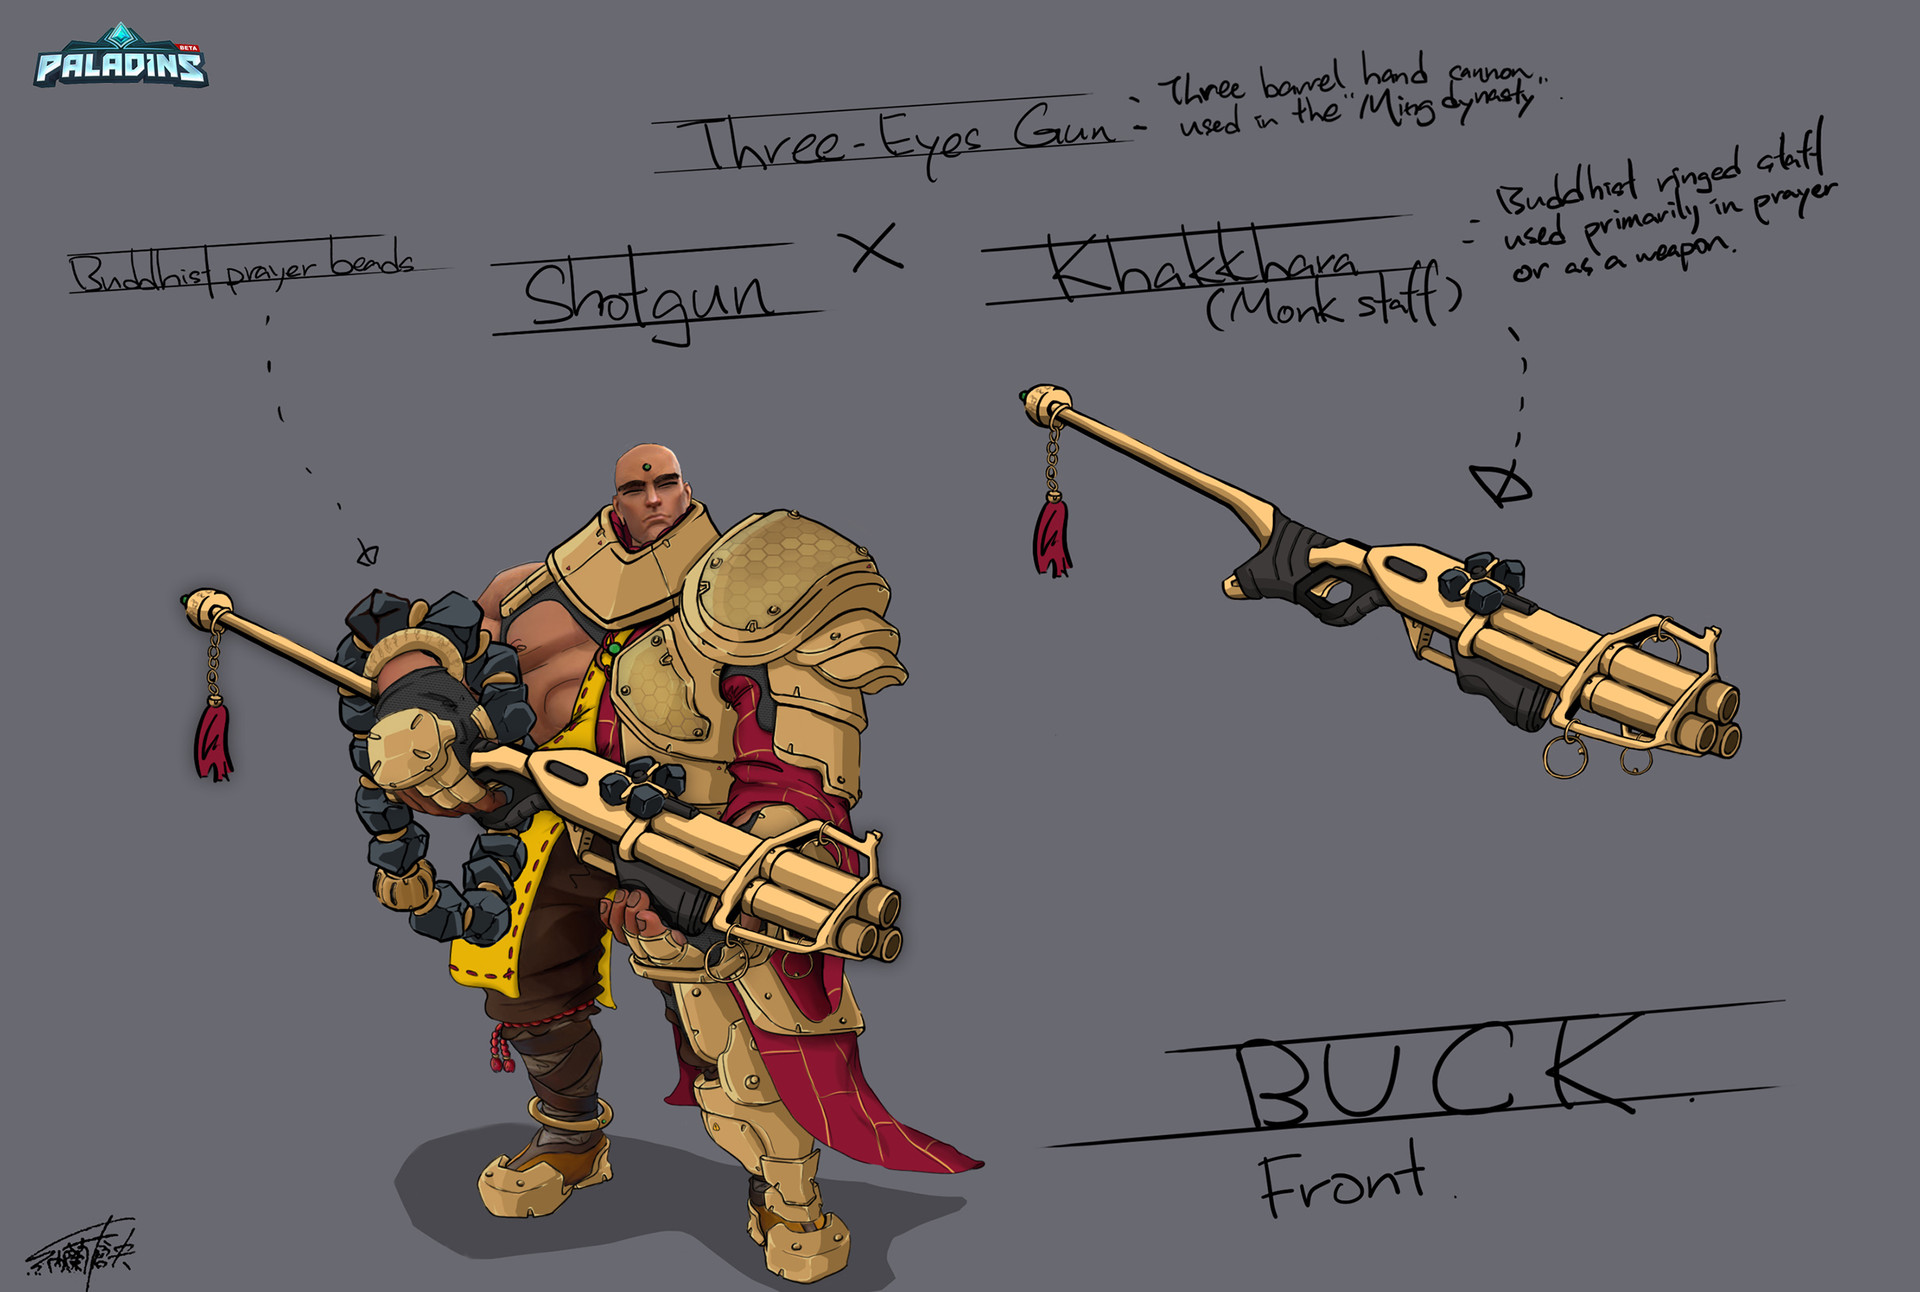 Paladins: Champions of the Real_Buck Abbot (Buddhism) Skin ConceptArt